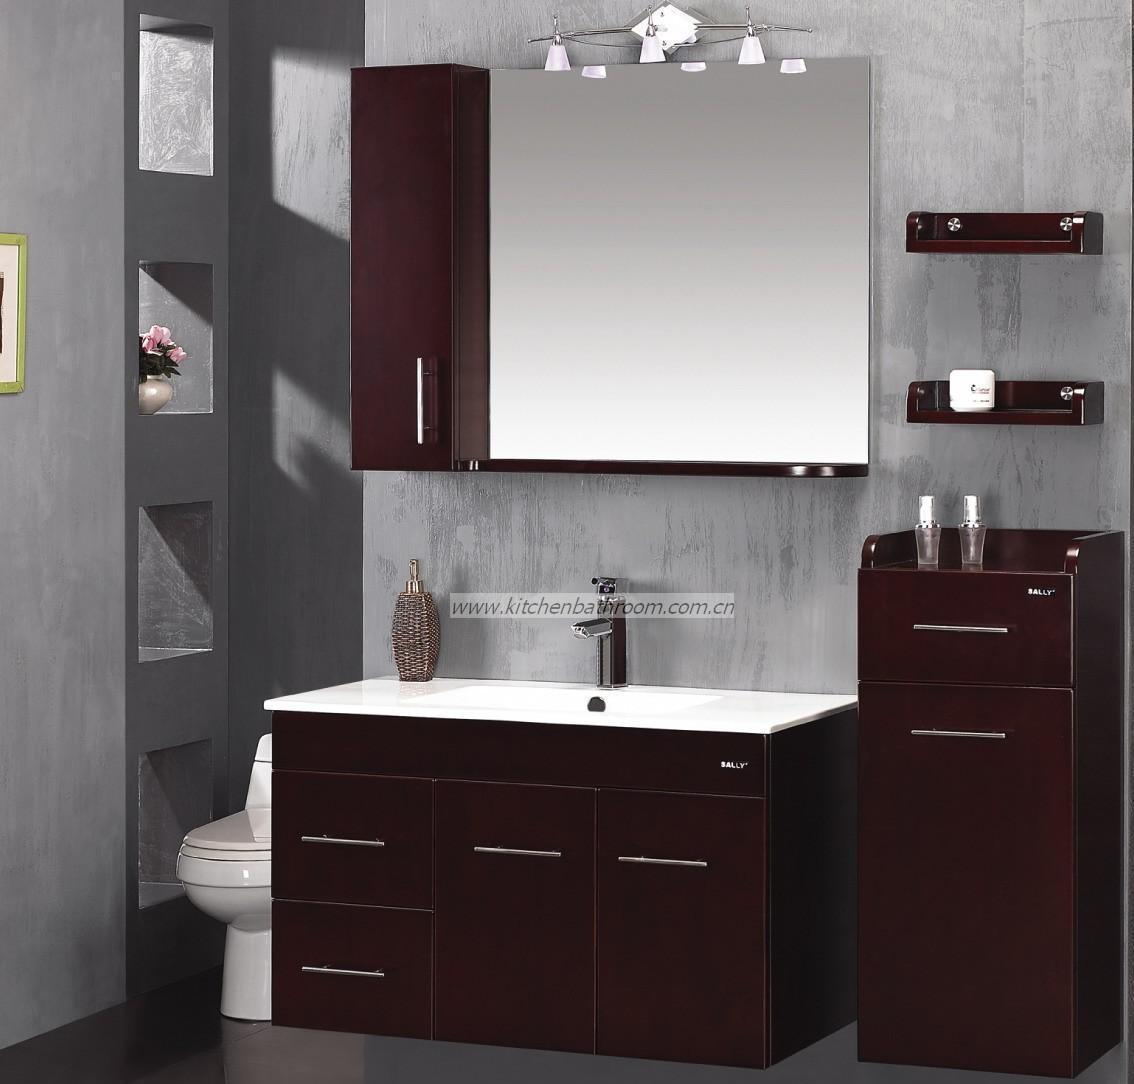 China Bathroom Cabinets YXBC 2022